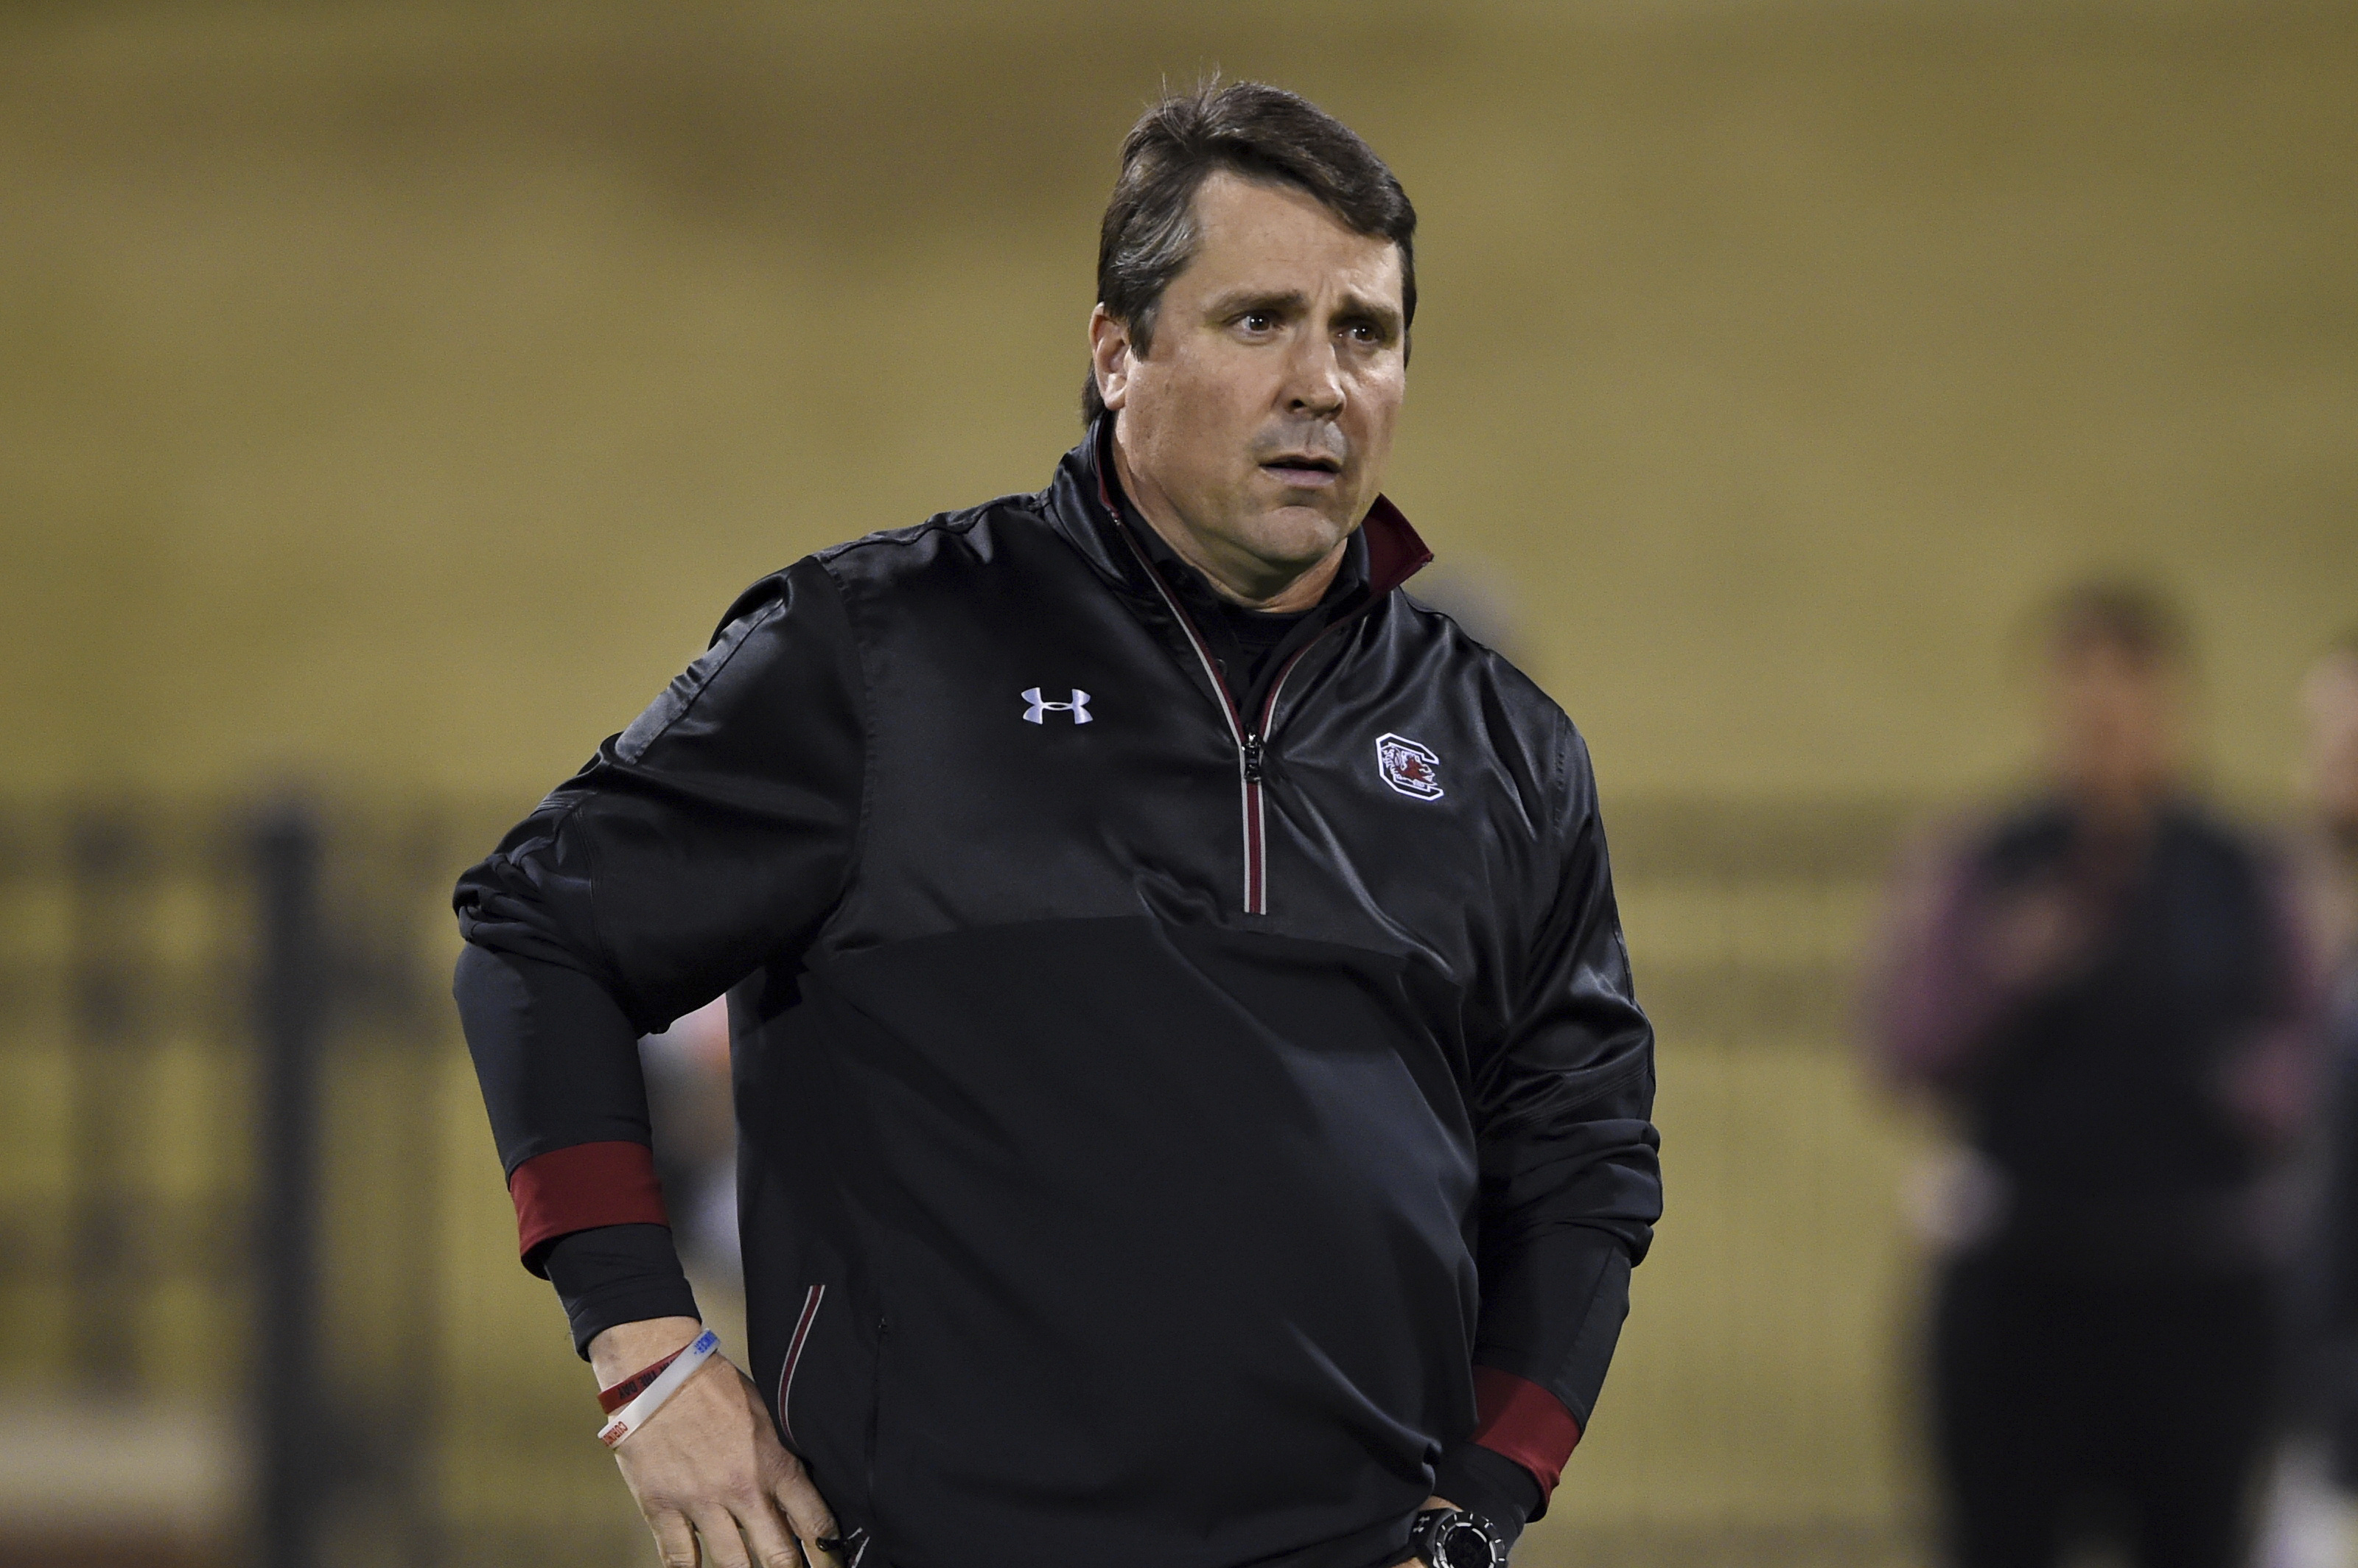 This Nov. 26, 2016 photo shows South Carolina head coach Will Muschamp walking the field before the start of an NCAA college football game against Clemson in Clemson, S.C. South Carolina will face South Florida on Thursday in the Birmingham Bowl. (AP Phot